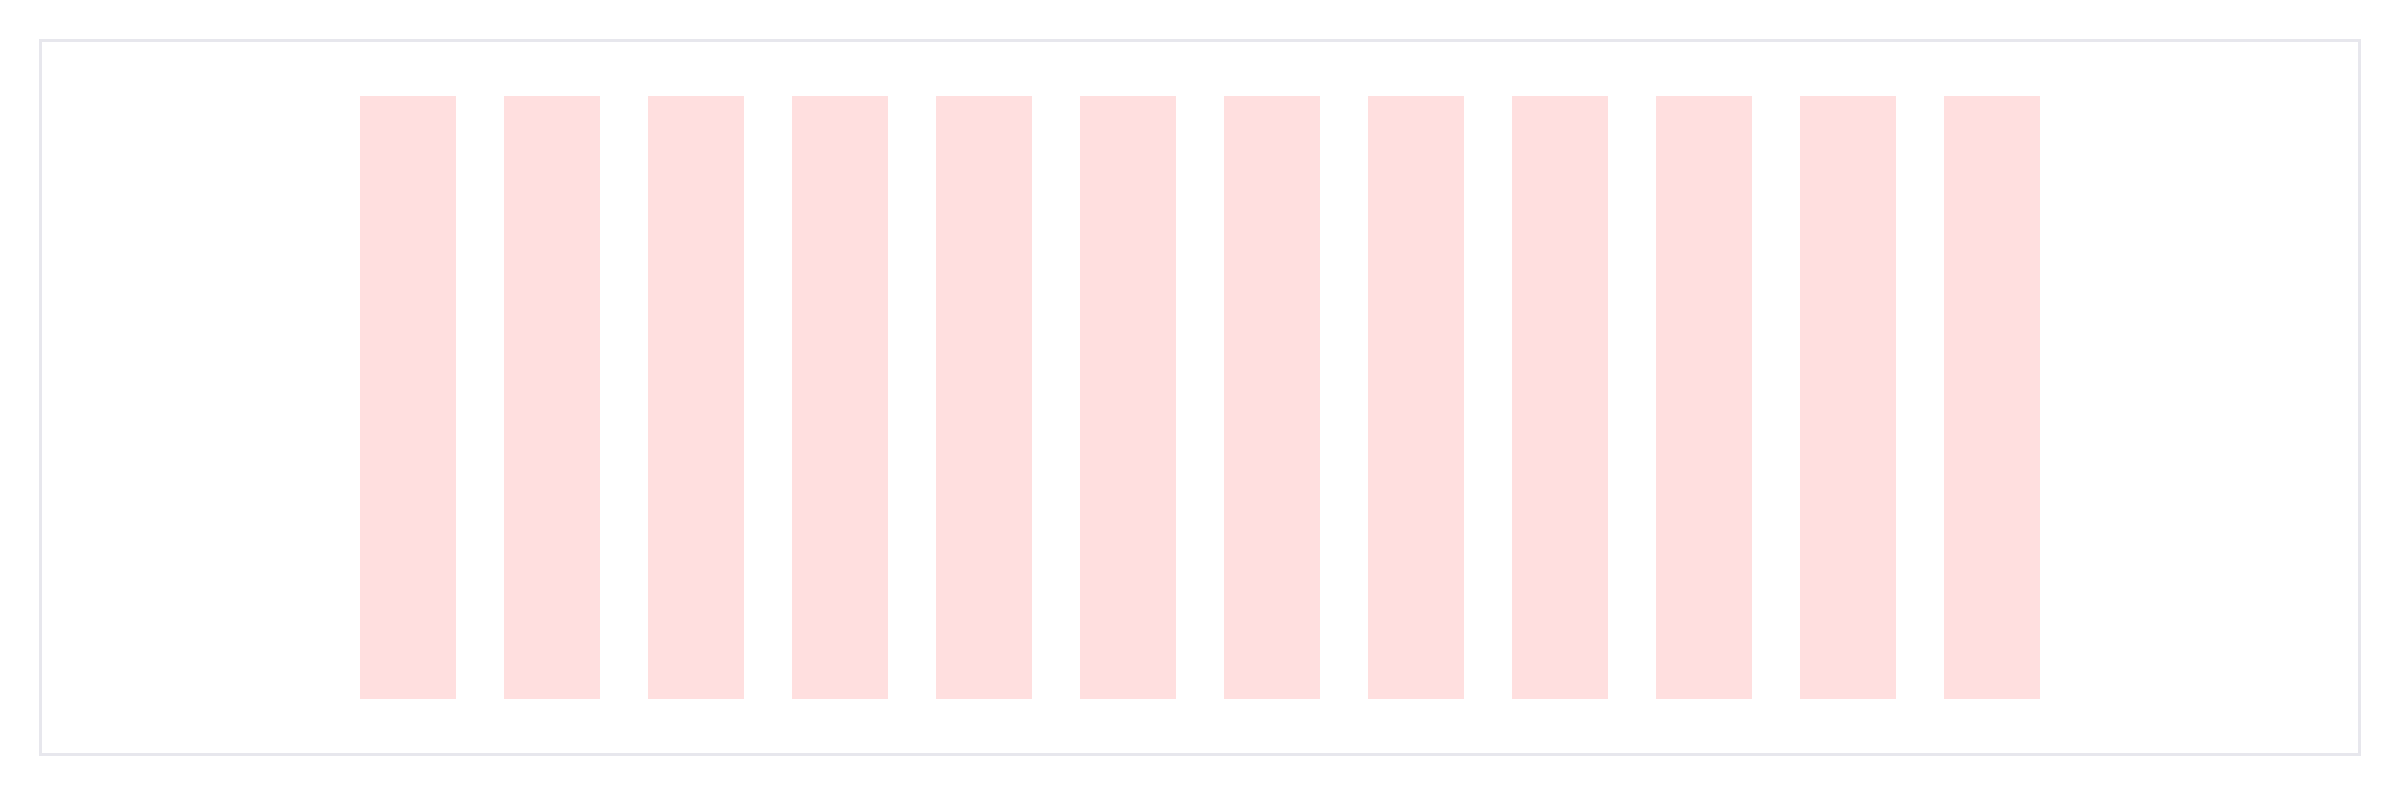 12 columns to represent the grid styles